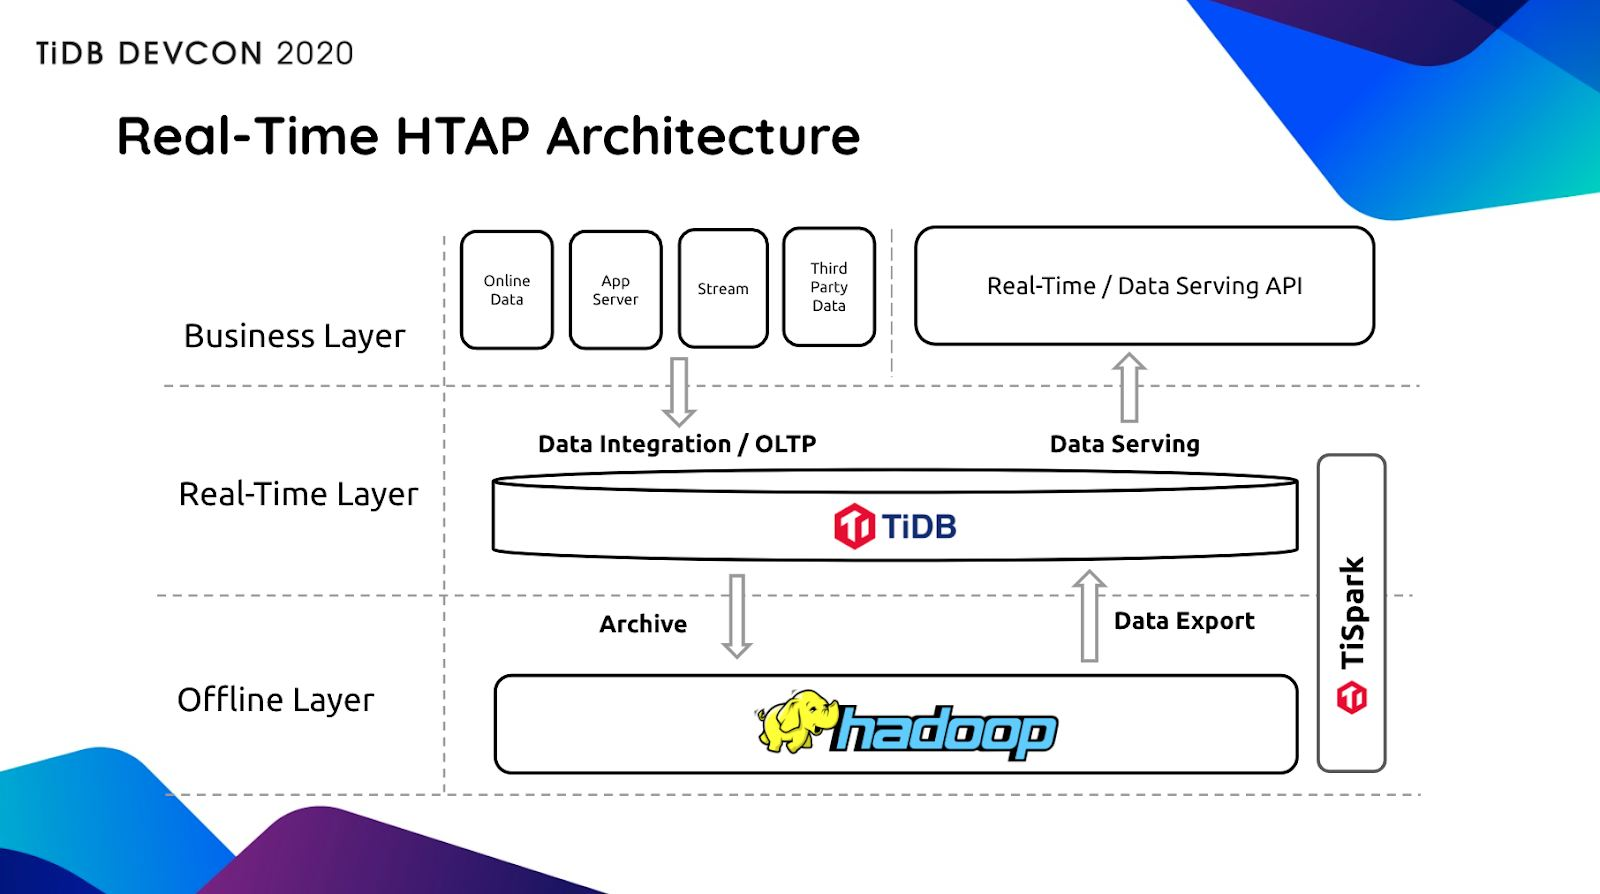 TiDB's real-time HTAP architecture